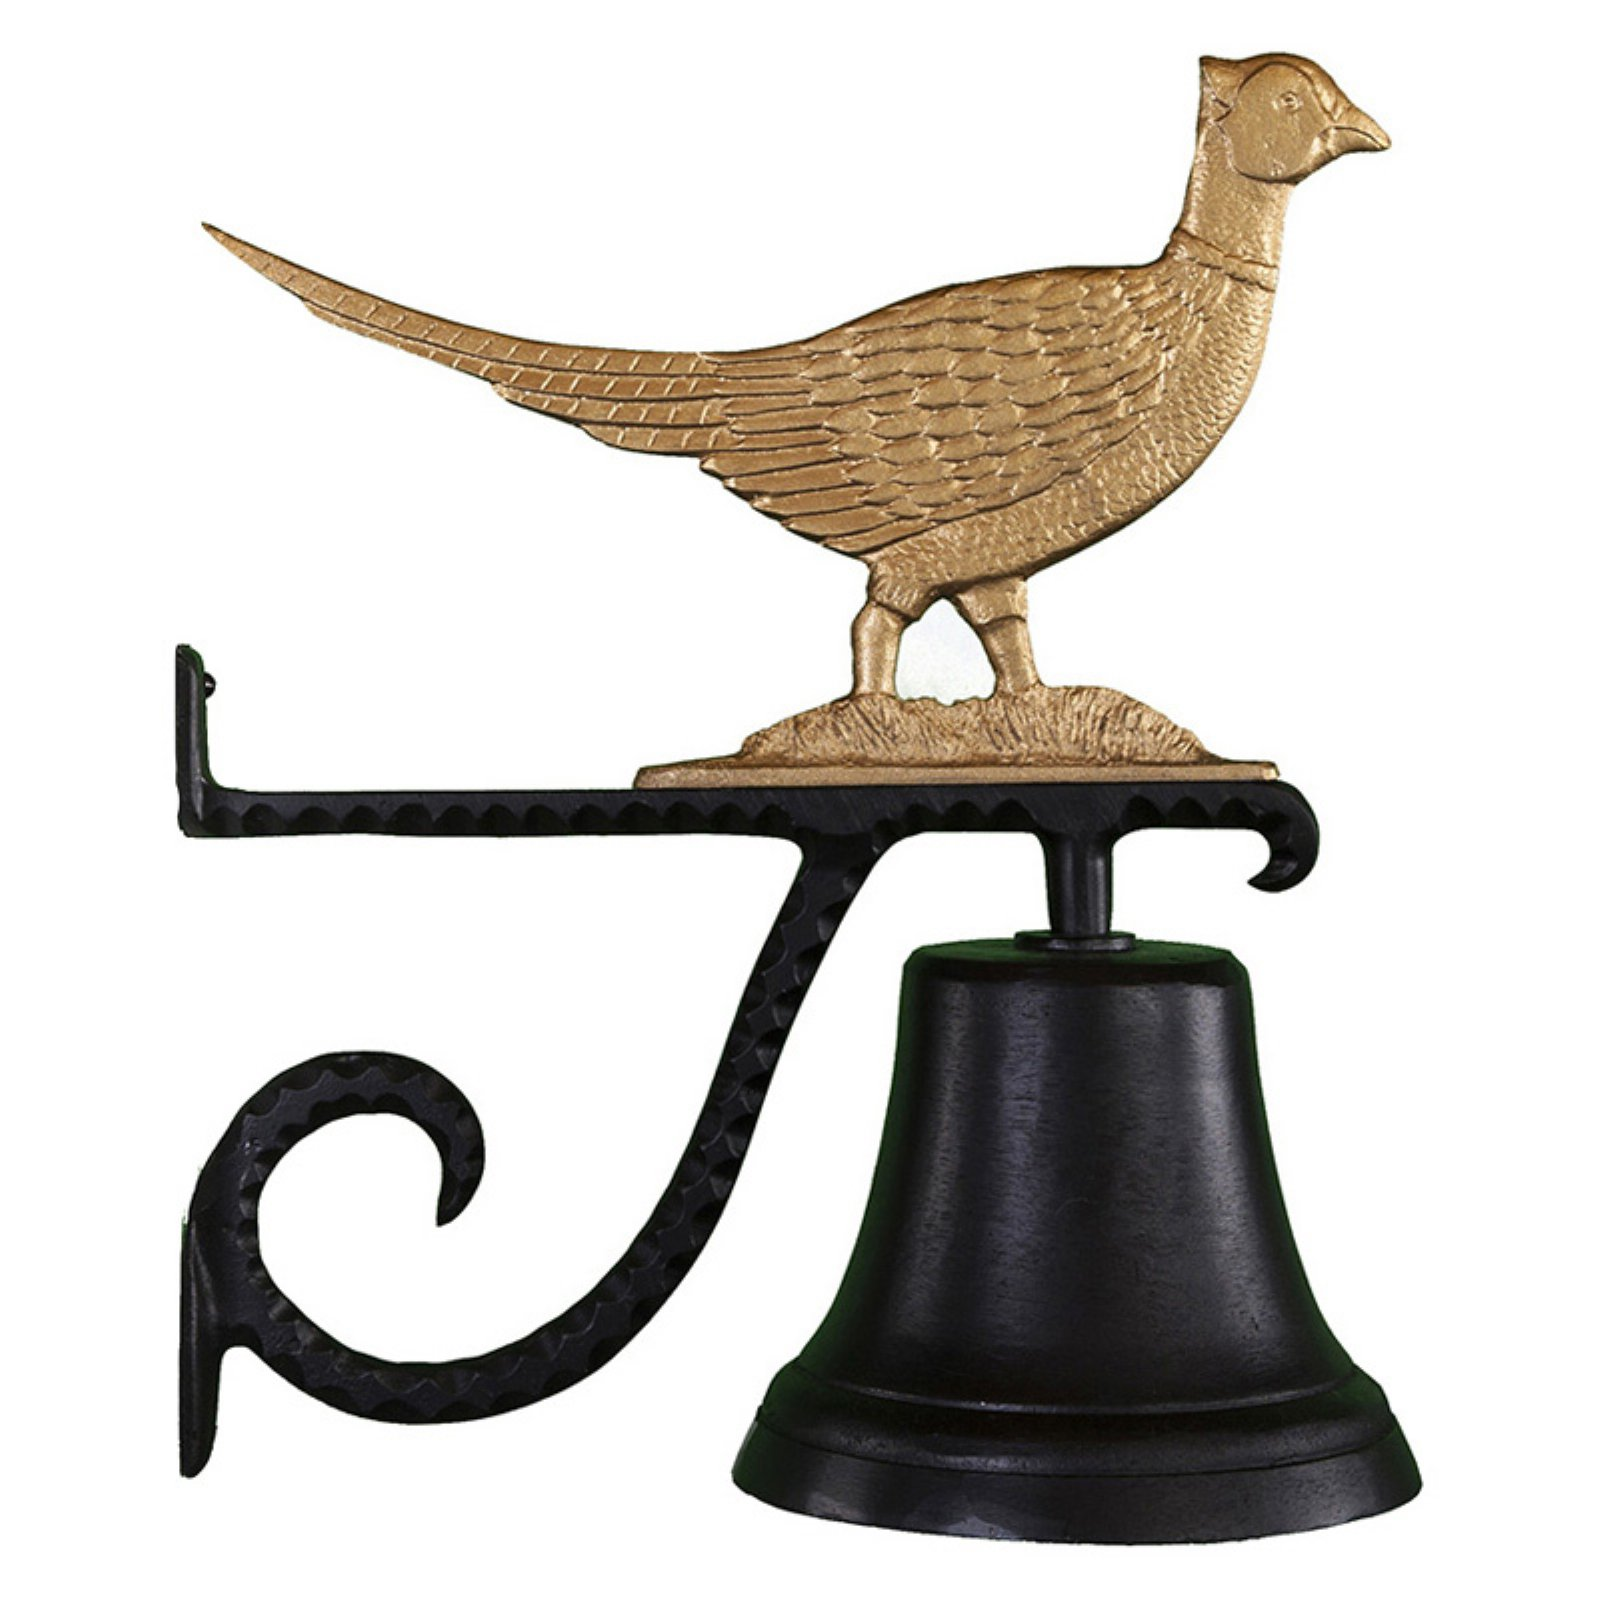 Cast Bell with Gold Pheasant Ornament